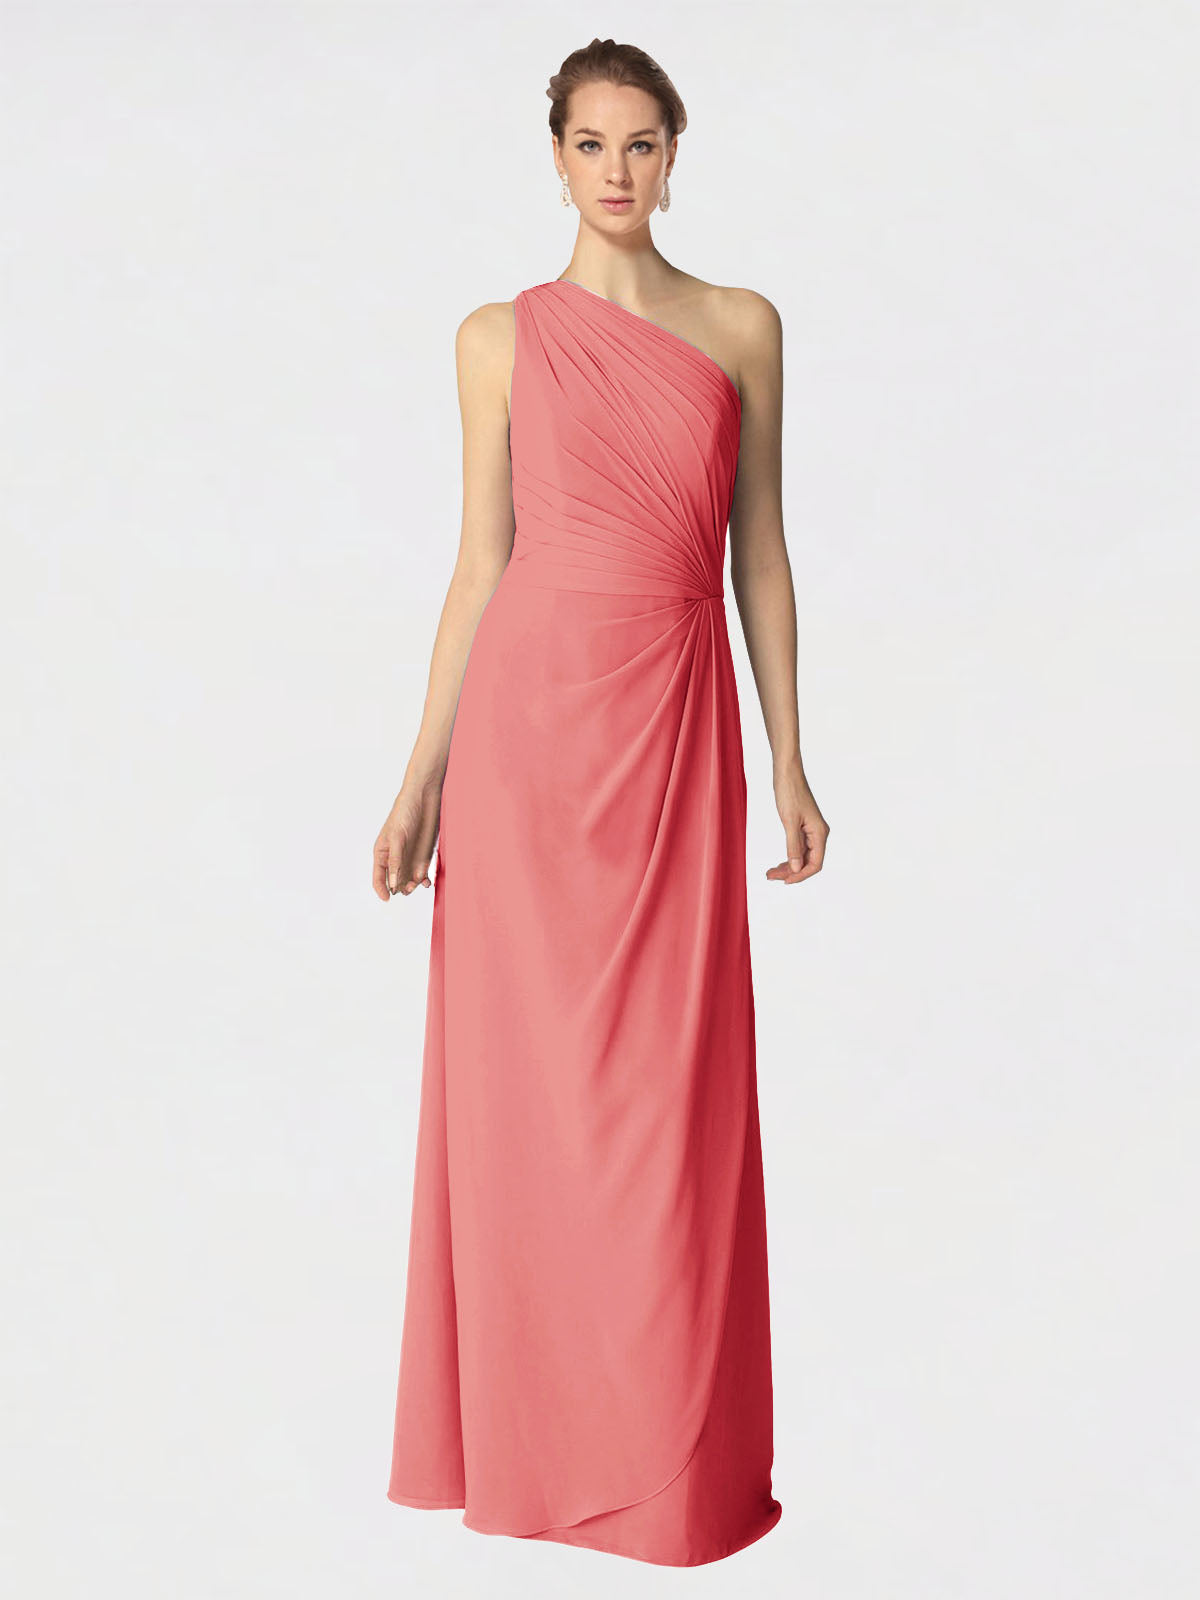 Long A-Line One Shoulder Sleeveless Desert Rose Chiffon Bridesmaid Dress Aurora